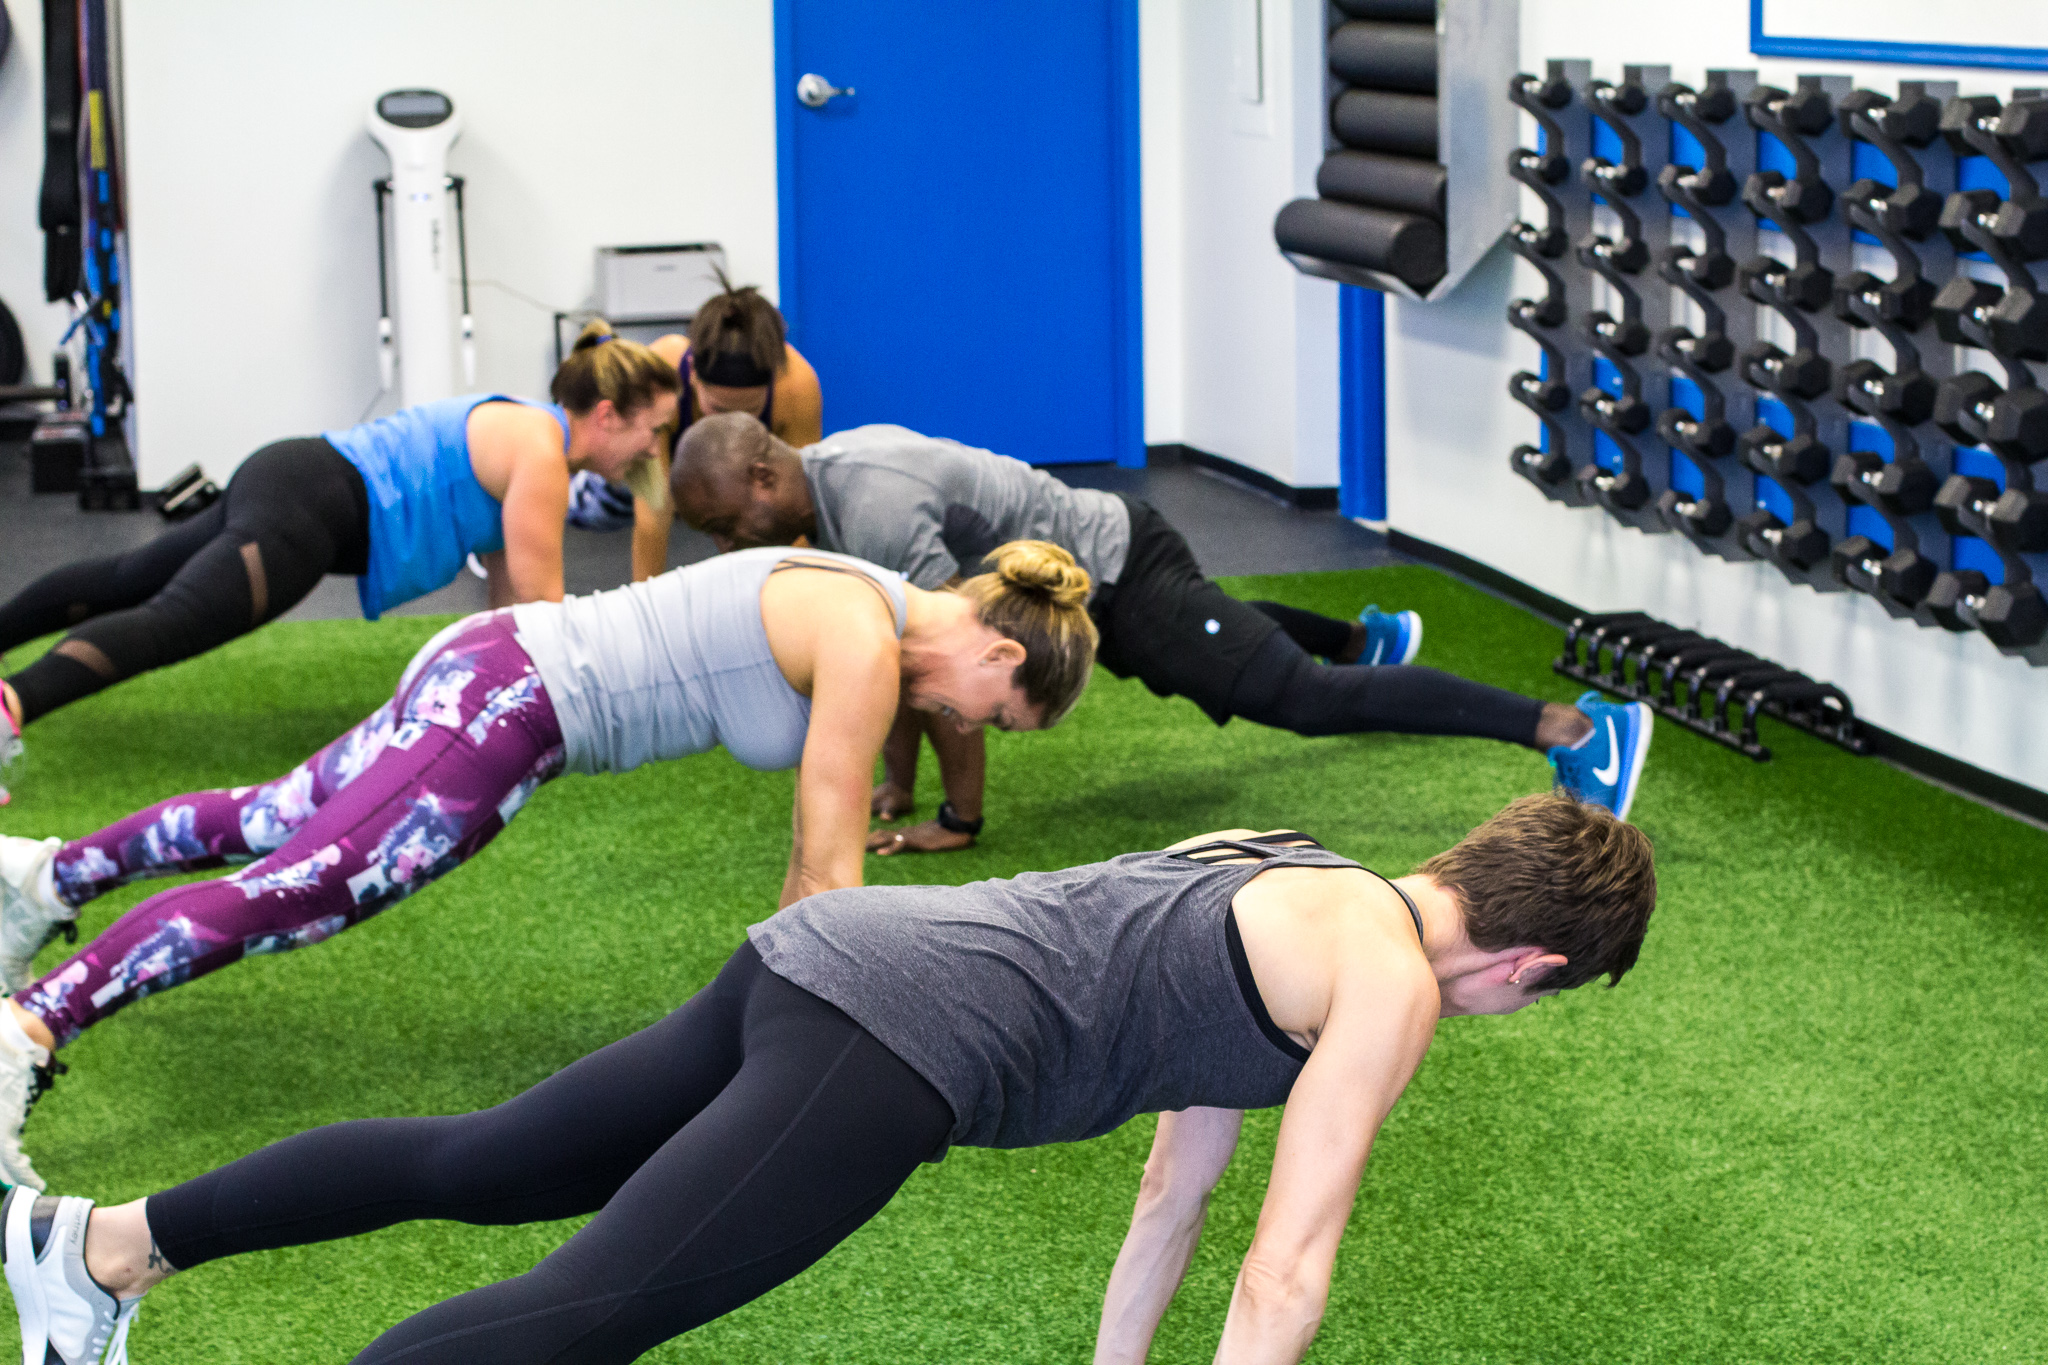 team Training - Small group training is a fast paced full body workout that is best suited for intermediate to advanced athletes looking to train in a fun and encouraging environment. Simply put, this is just an efficient and effective way to get in shape and stay in shape. You will change your body and your mind.